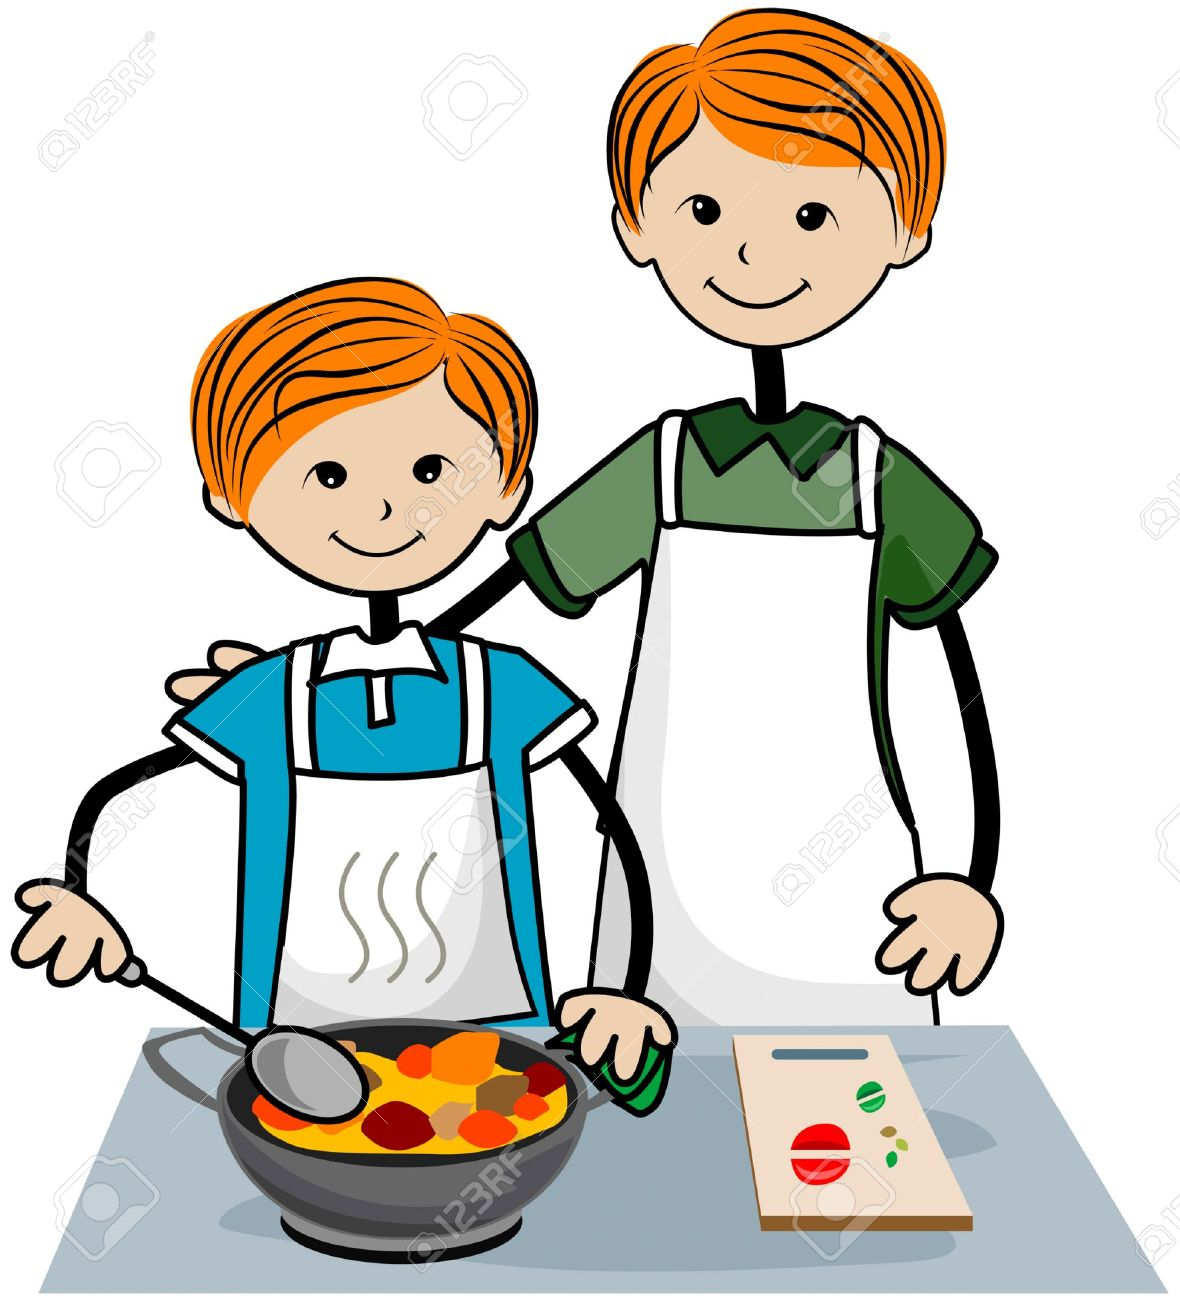 Cooked clipart graphic royalty free stock Cooking Clipart Images Free | Free download best Cooking Clipart ... graphic royalty free stock